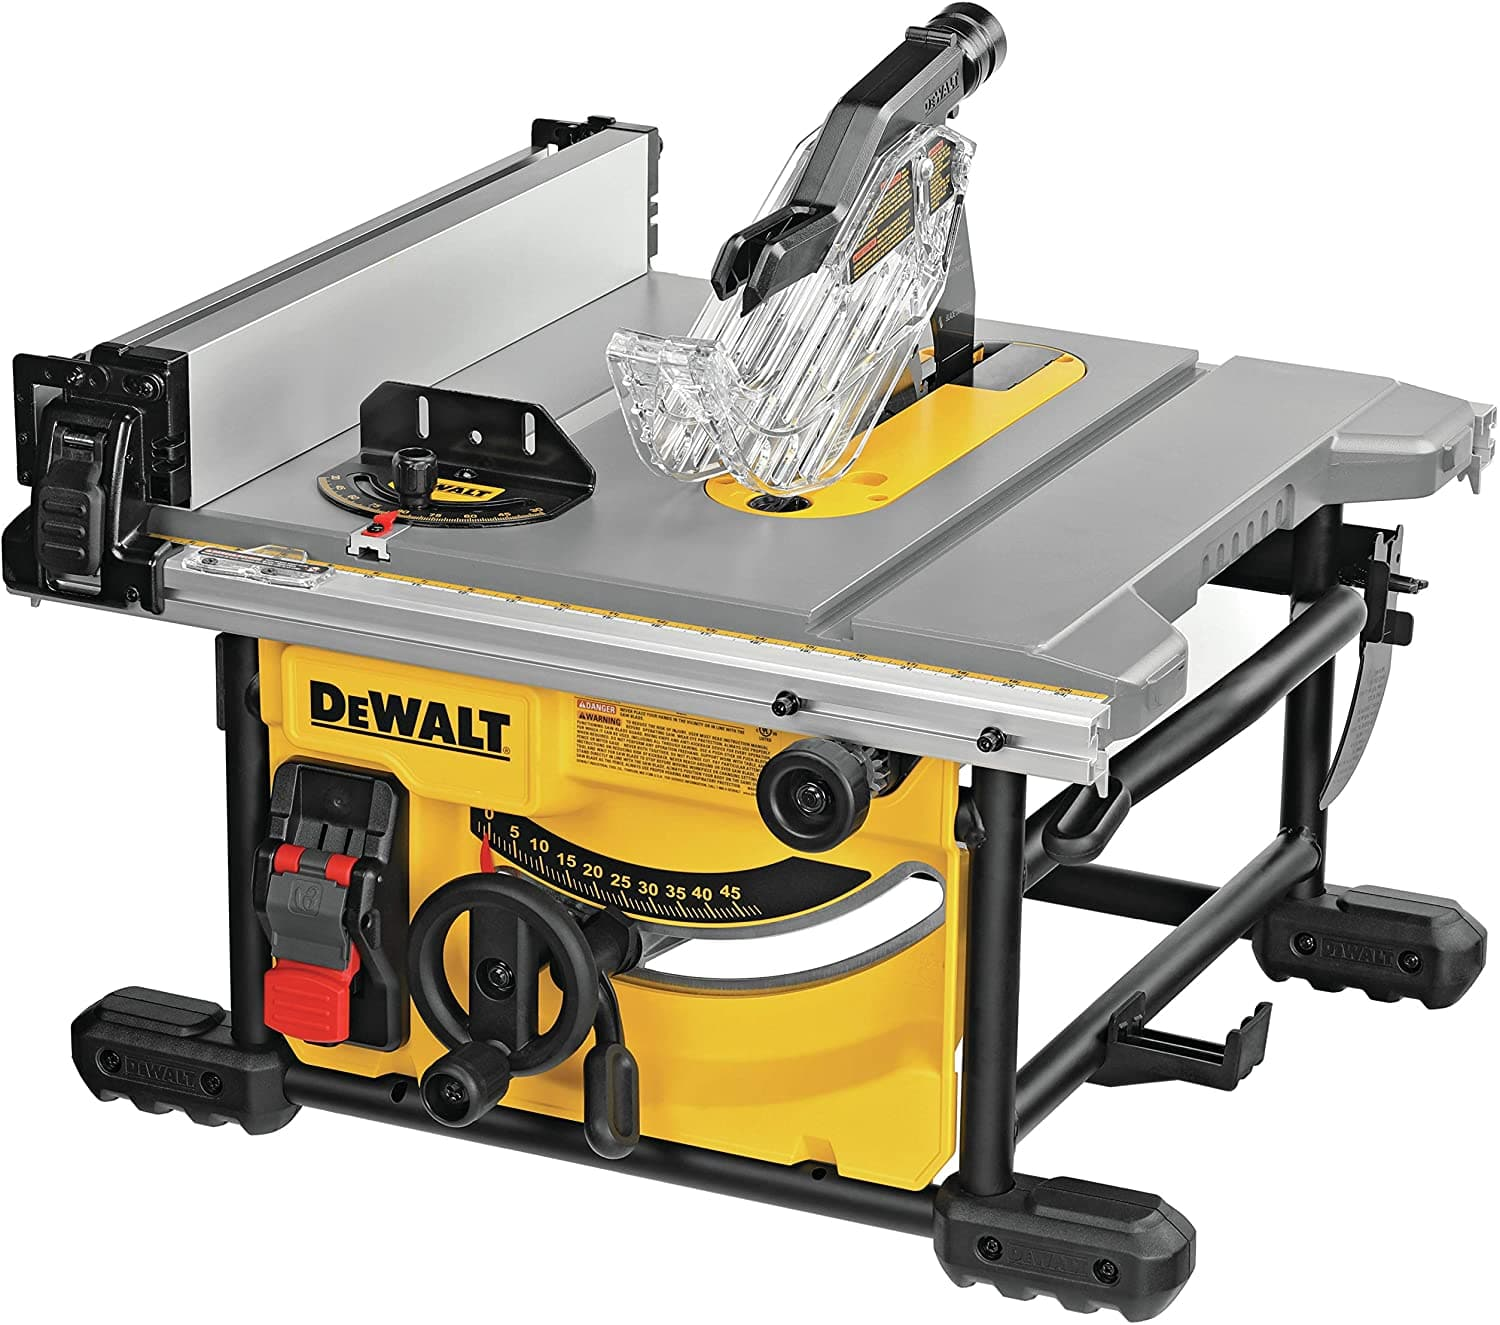 Dewalt 7485 8 1/2'' Table Saw No Stand - Amazon $279